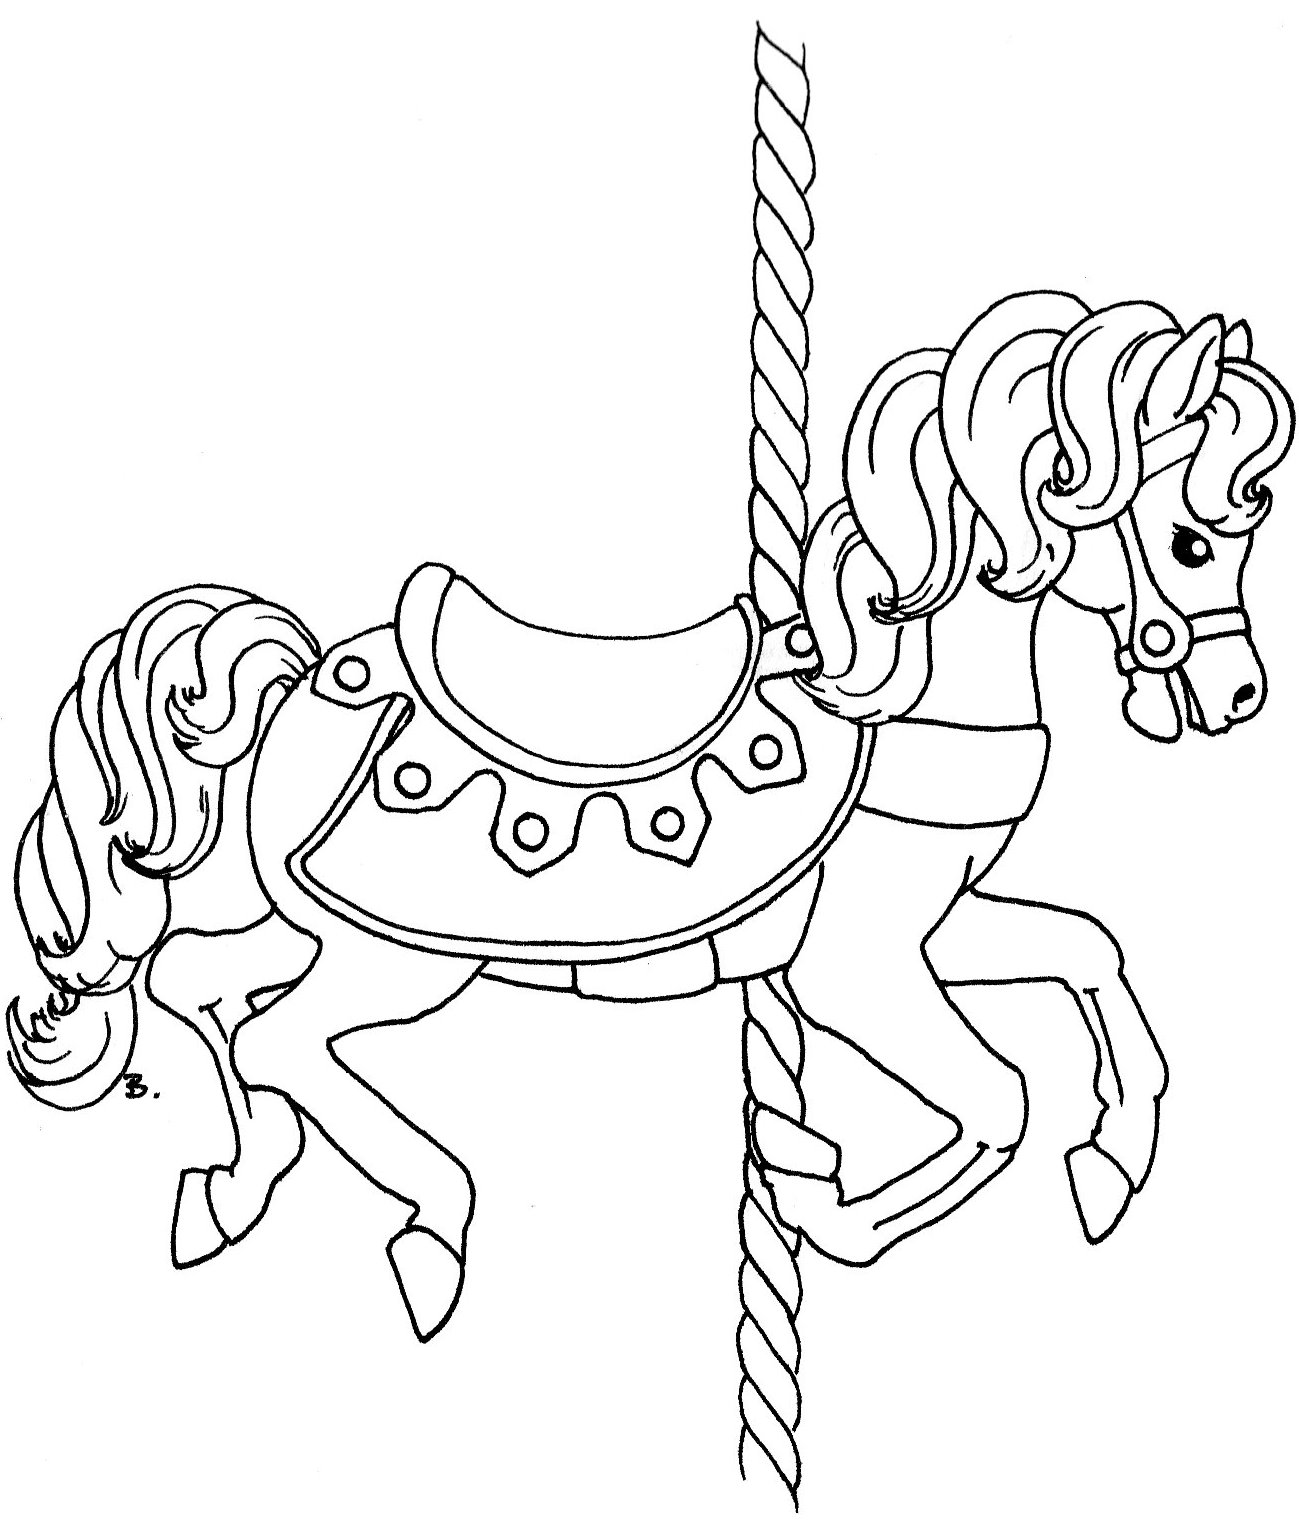 carousel animals coloring pages - beccy 39 s place carousel horse with rug